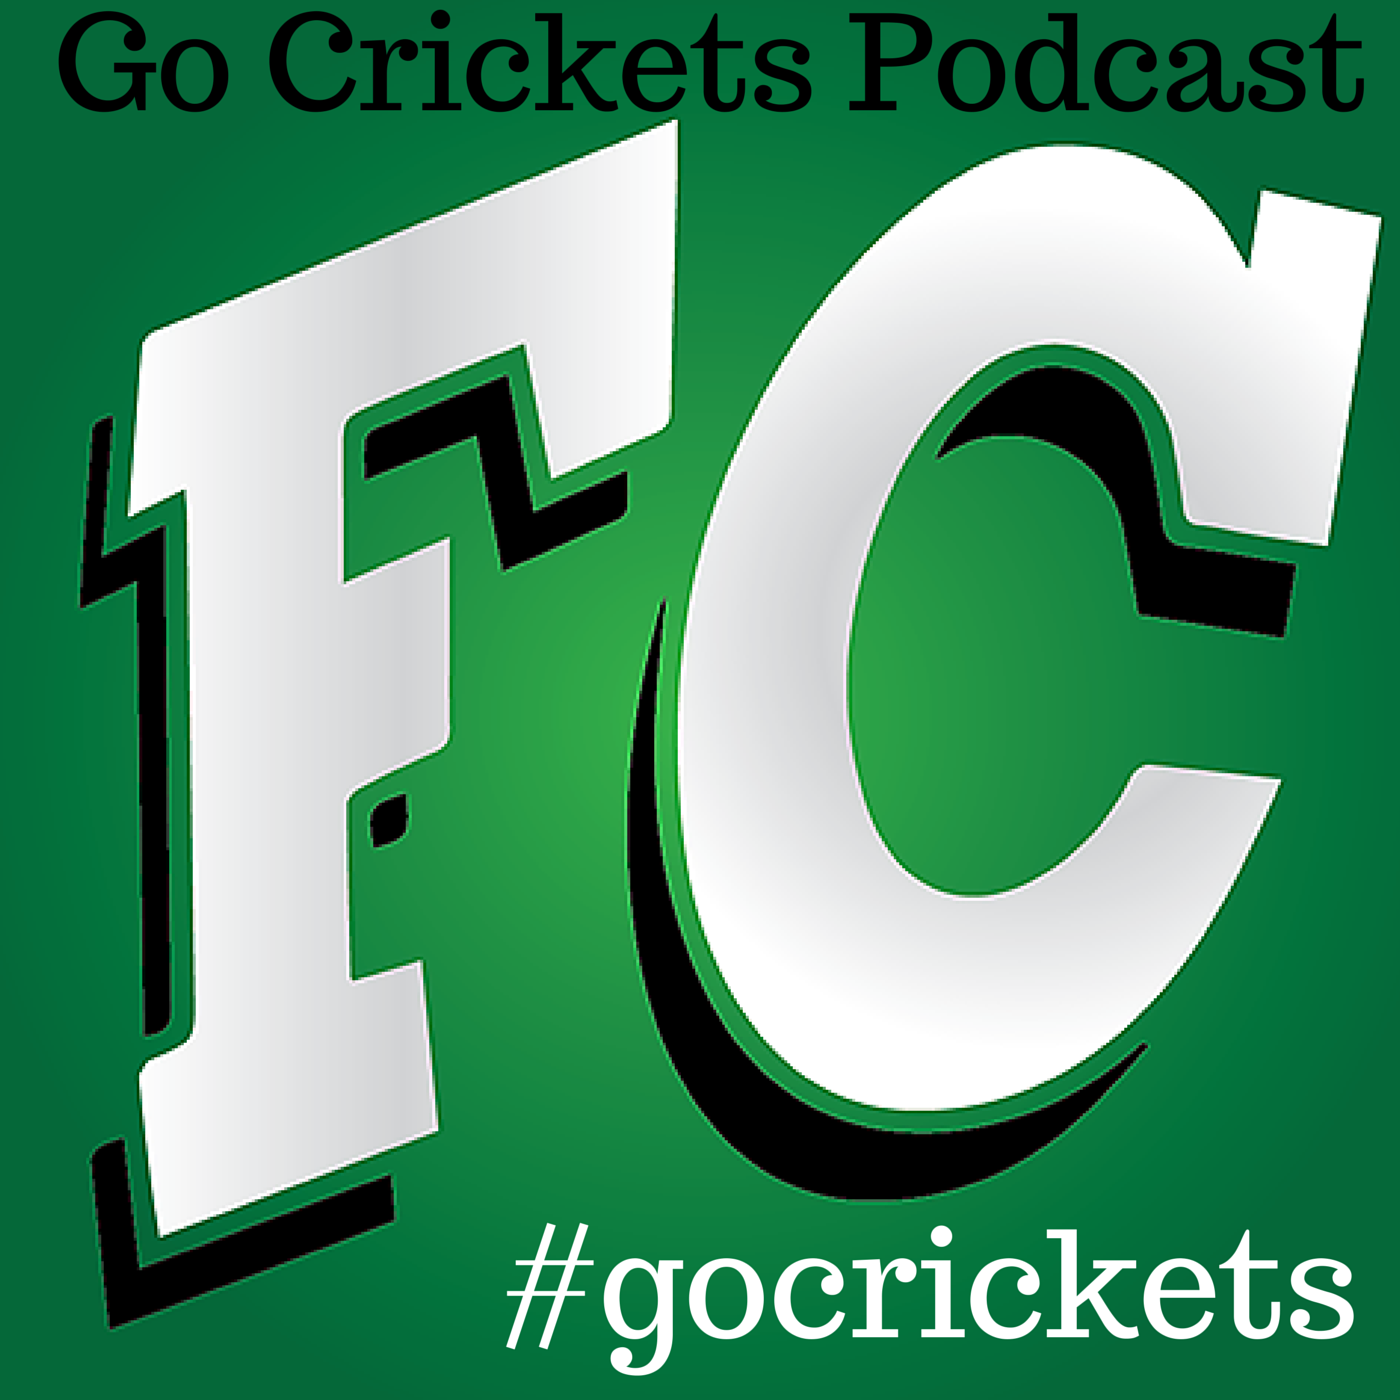 Go Crickets Podcast